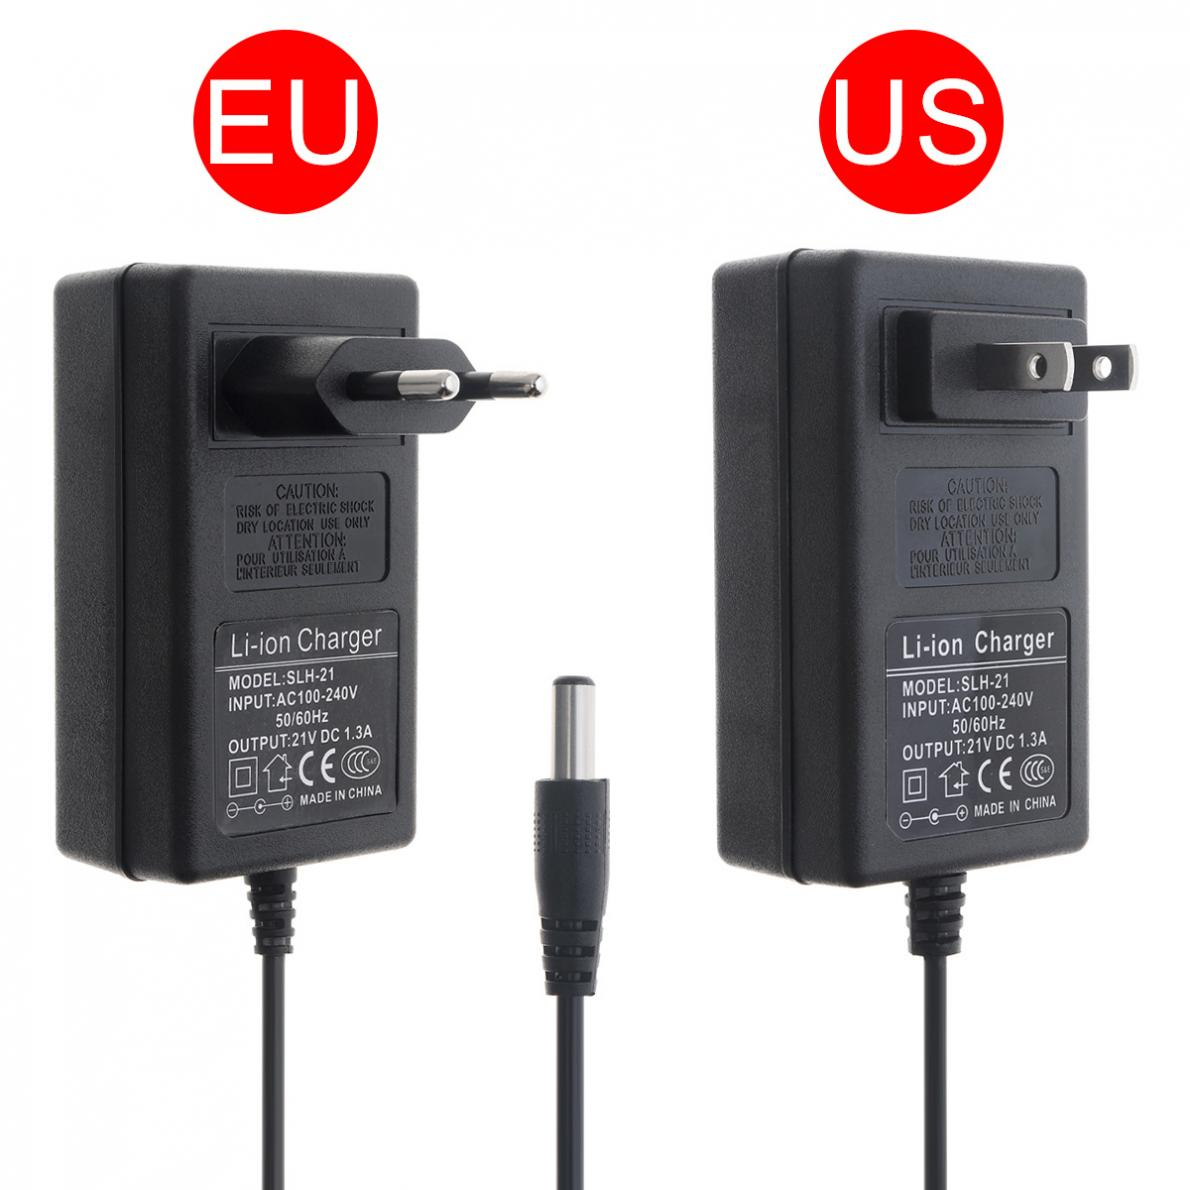 90cm PVC 21V Power Adapter Charger With EU Plug And US Plug For Lithium Electric Drill / Screwdriver / Wrench